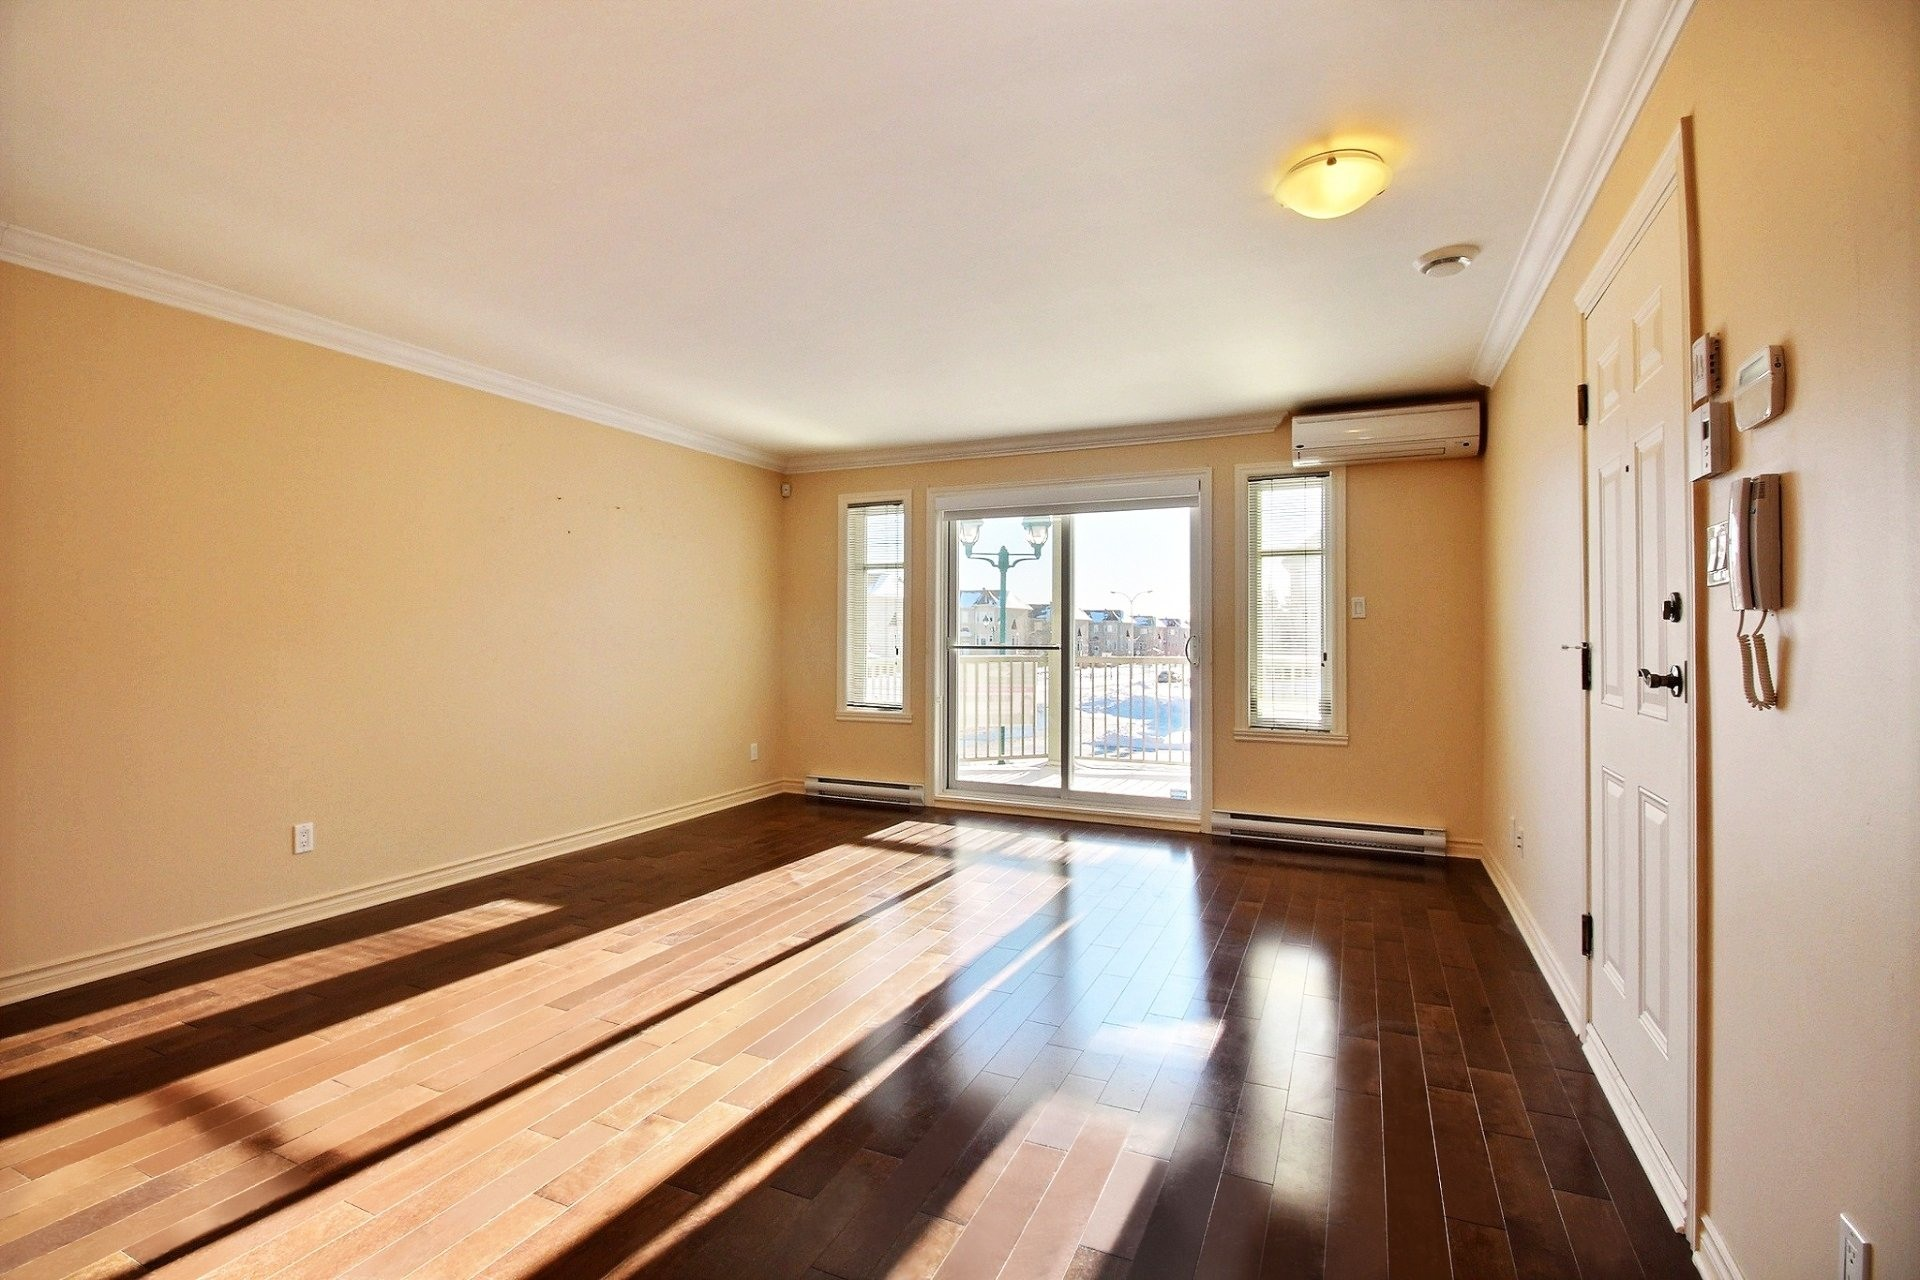 image 4 - Apartment For sale Laval Duvernay  - 7 rooms